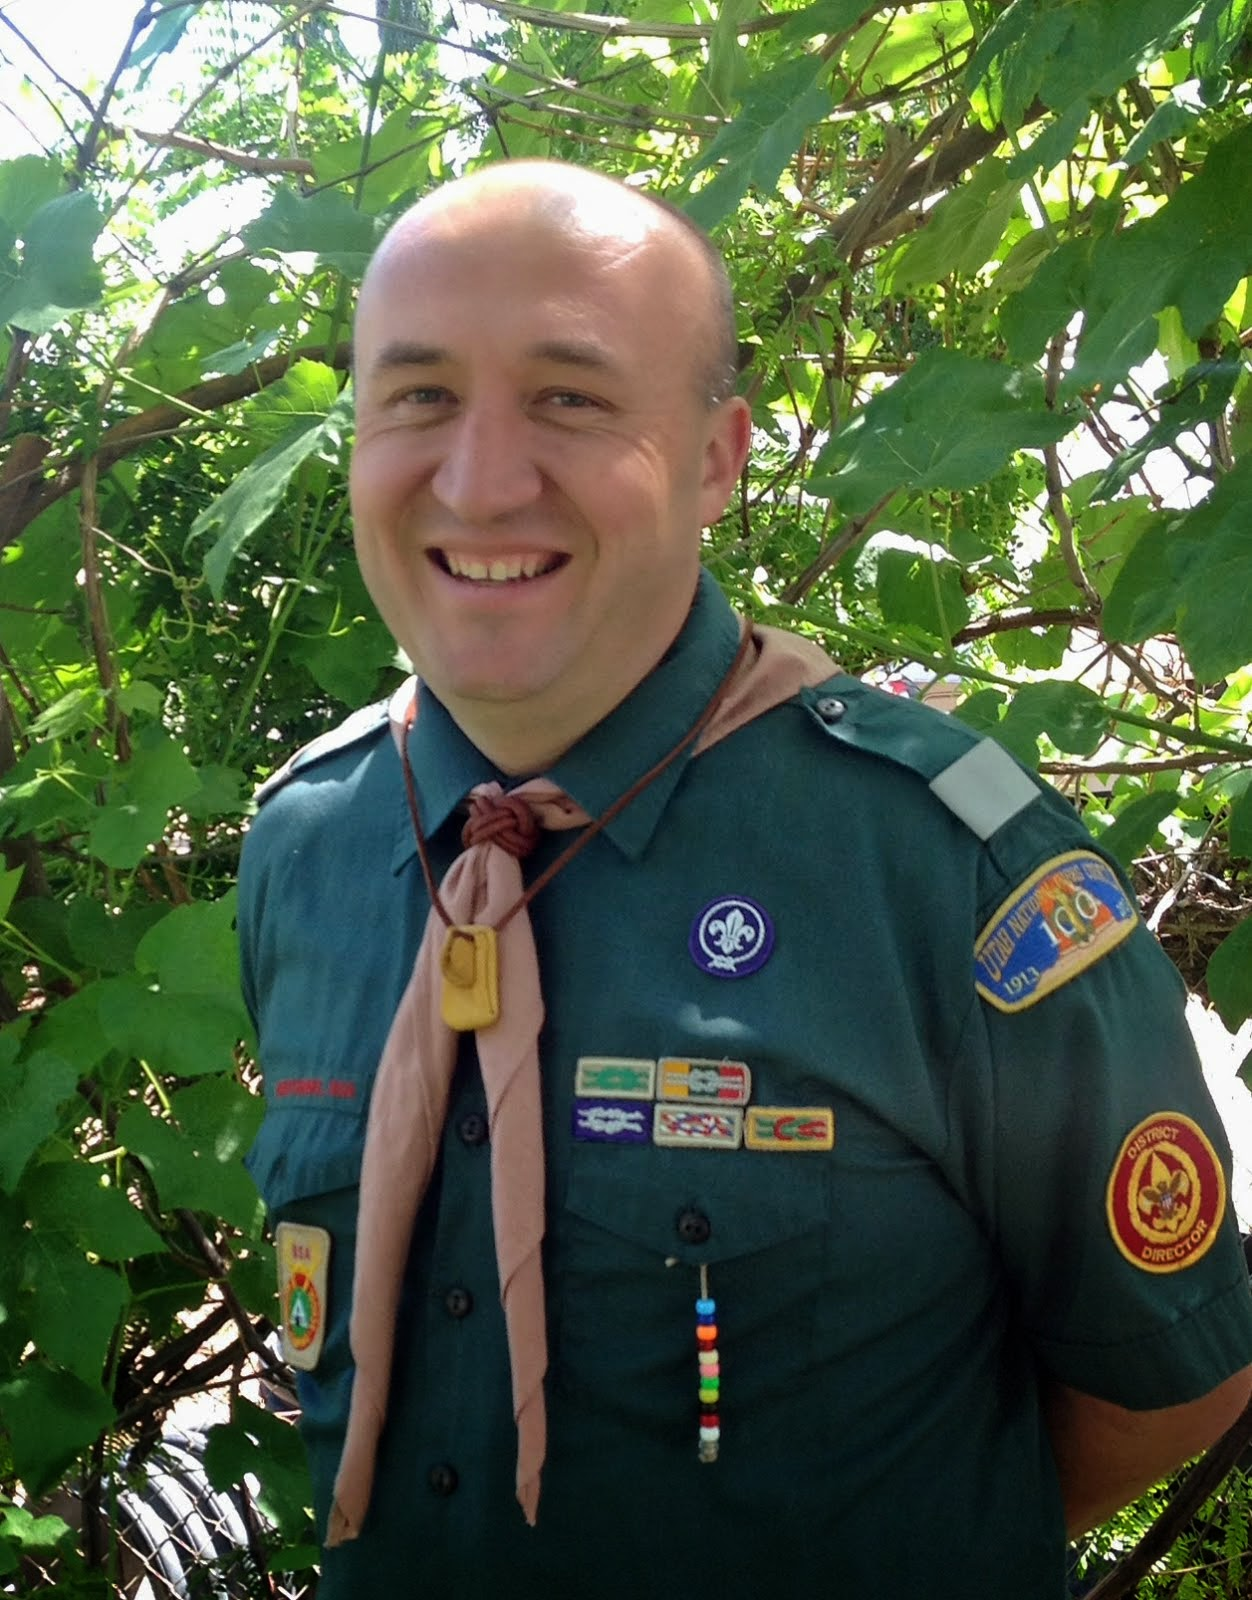 Consider, adult boy scout leader position agree with